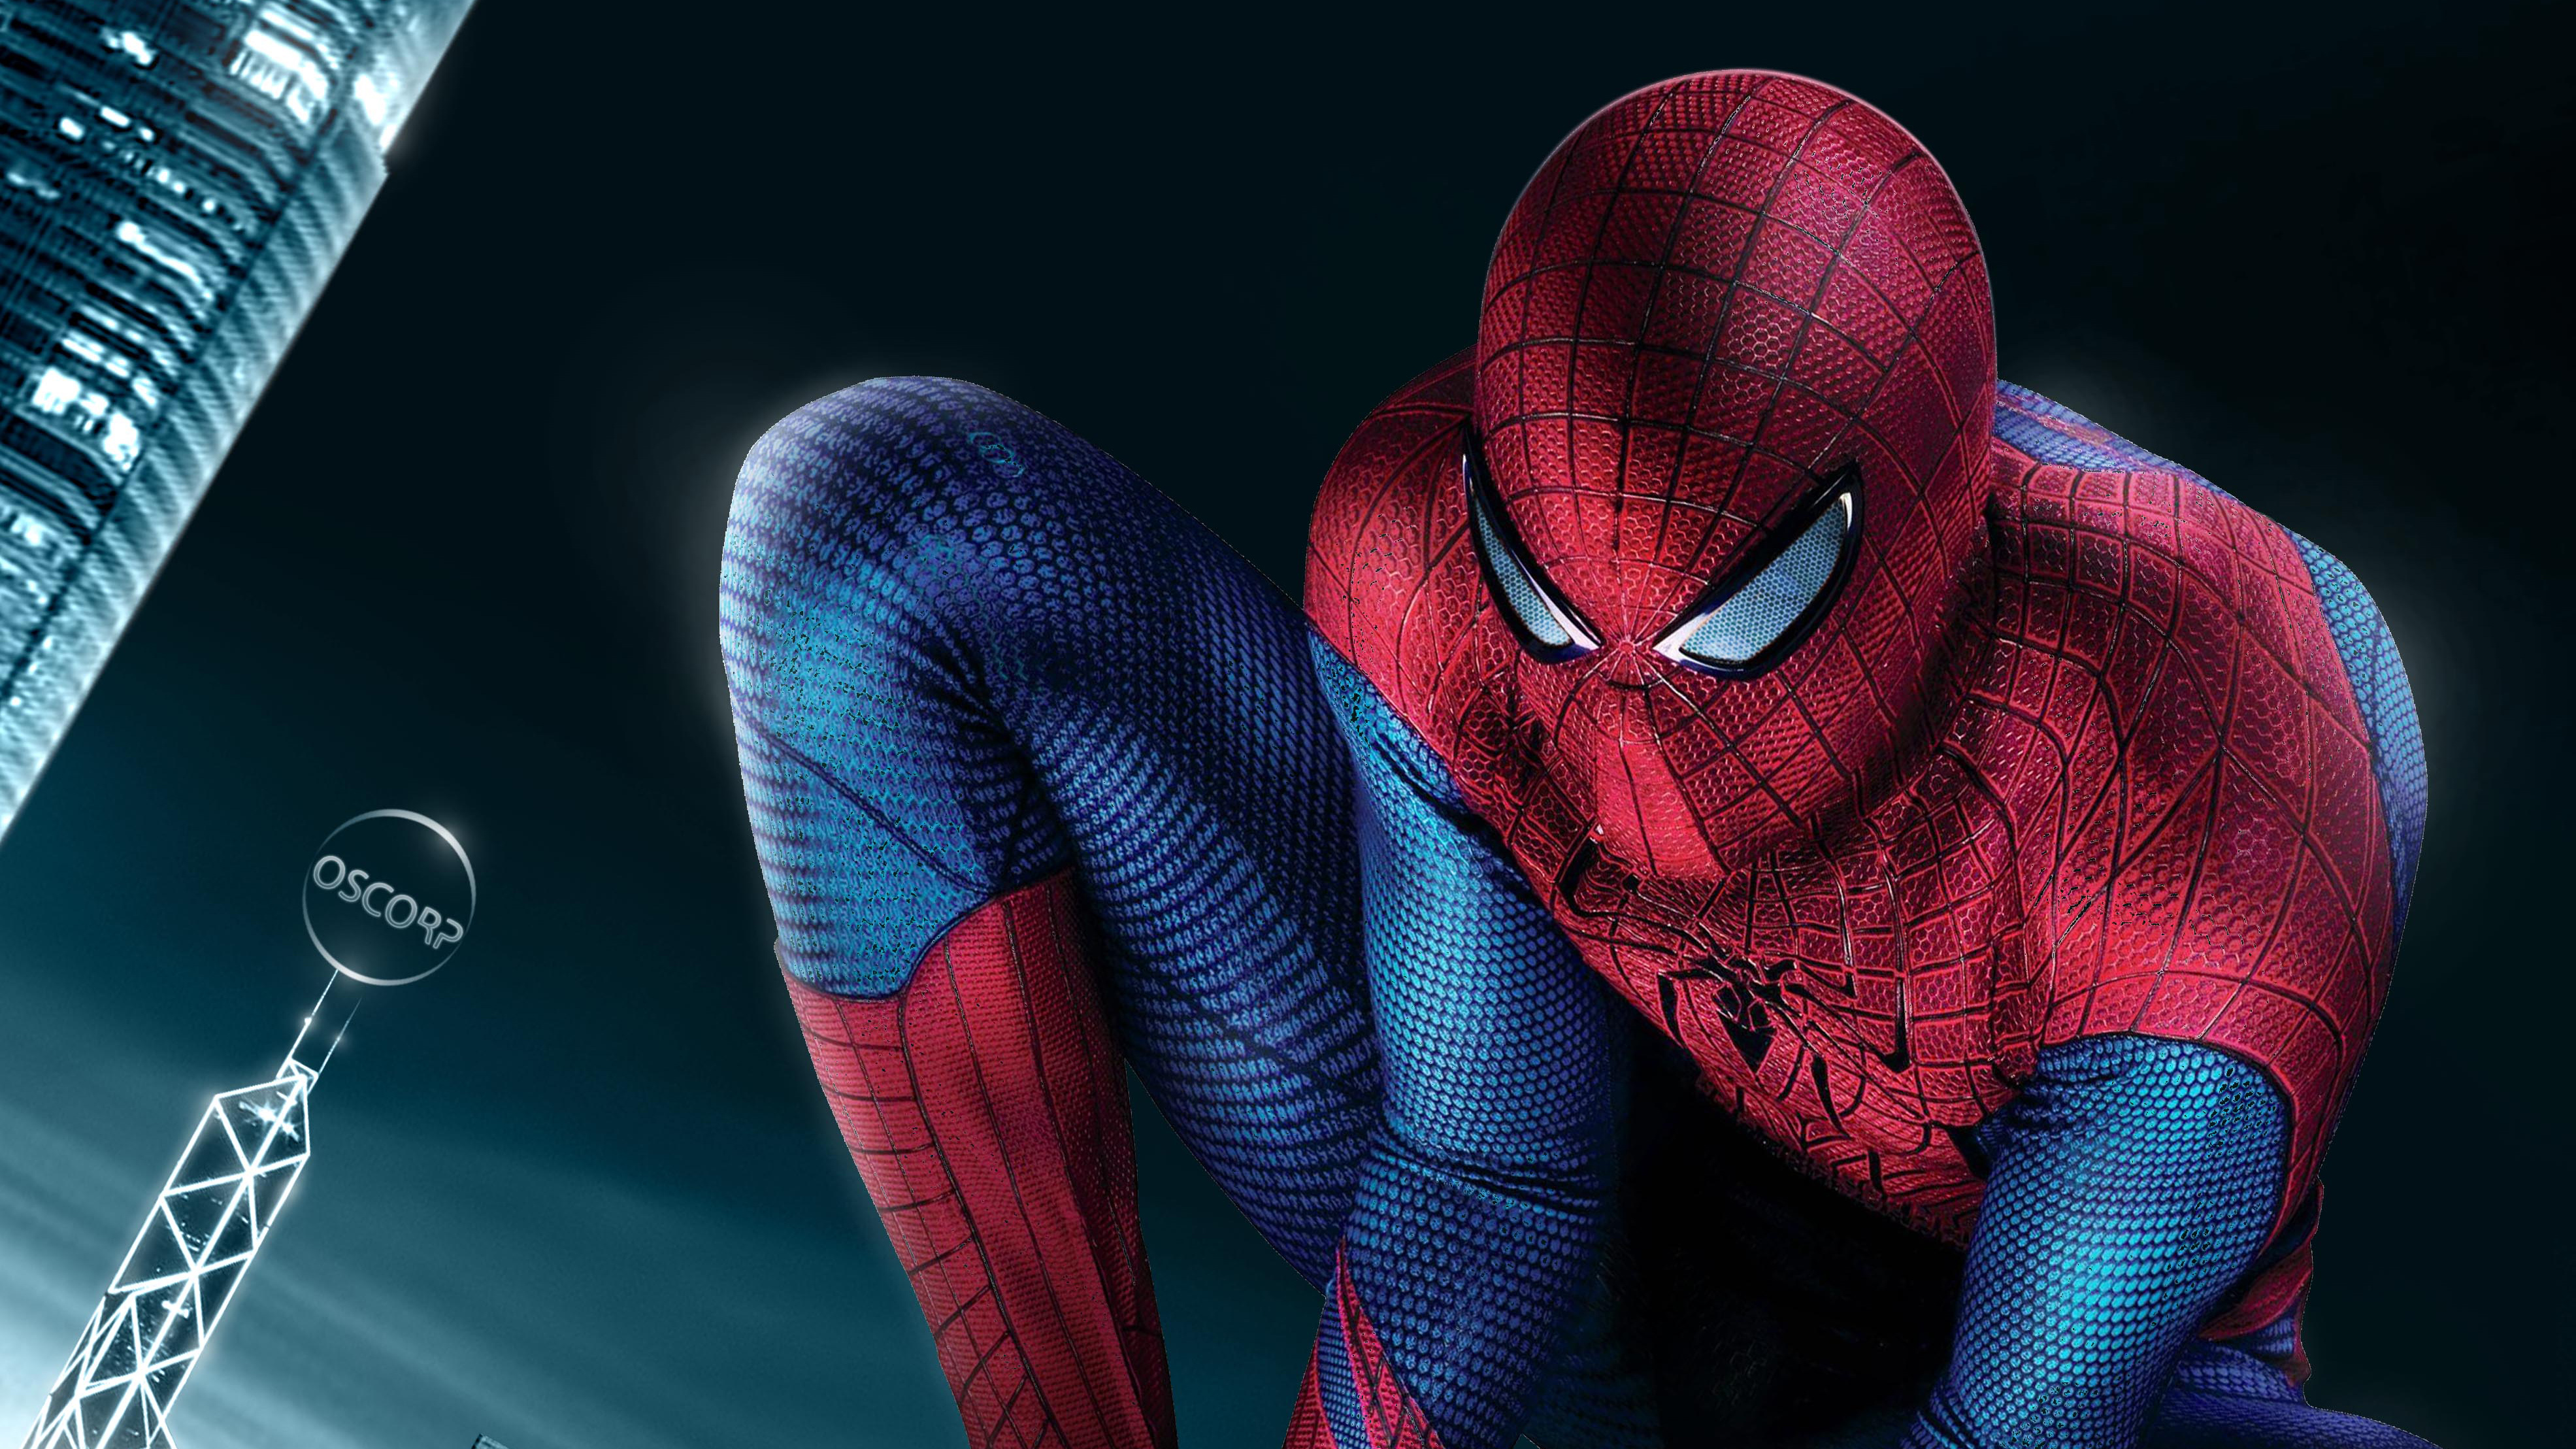 The Amazing Spider Man 4k Ultra Hd Wallpaper Background Image